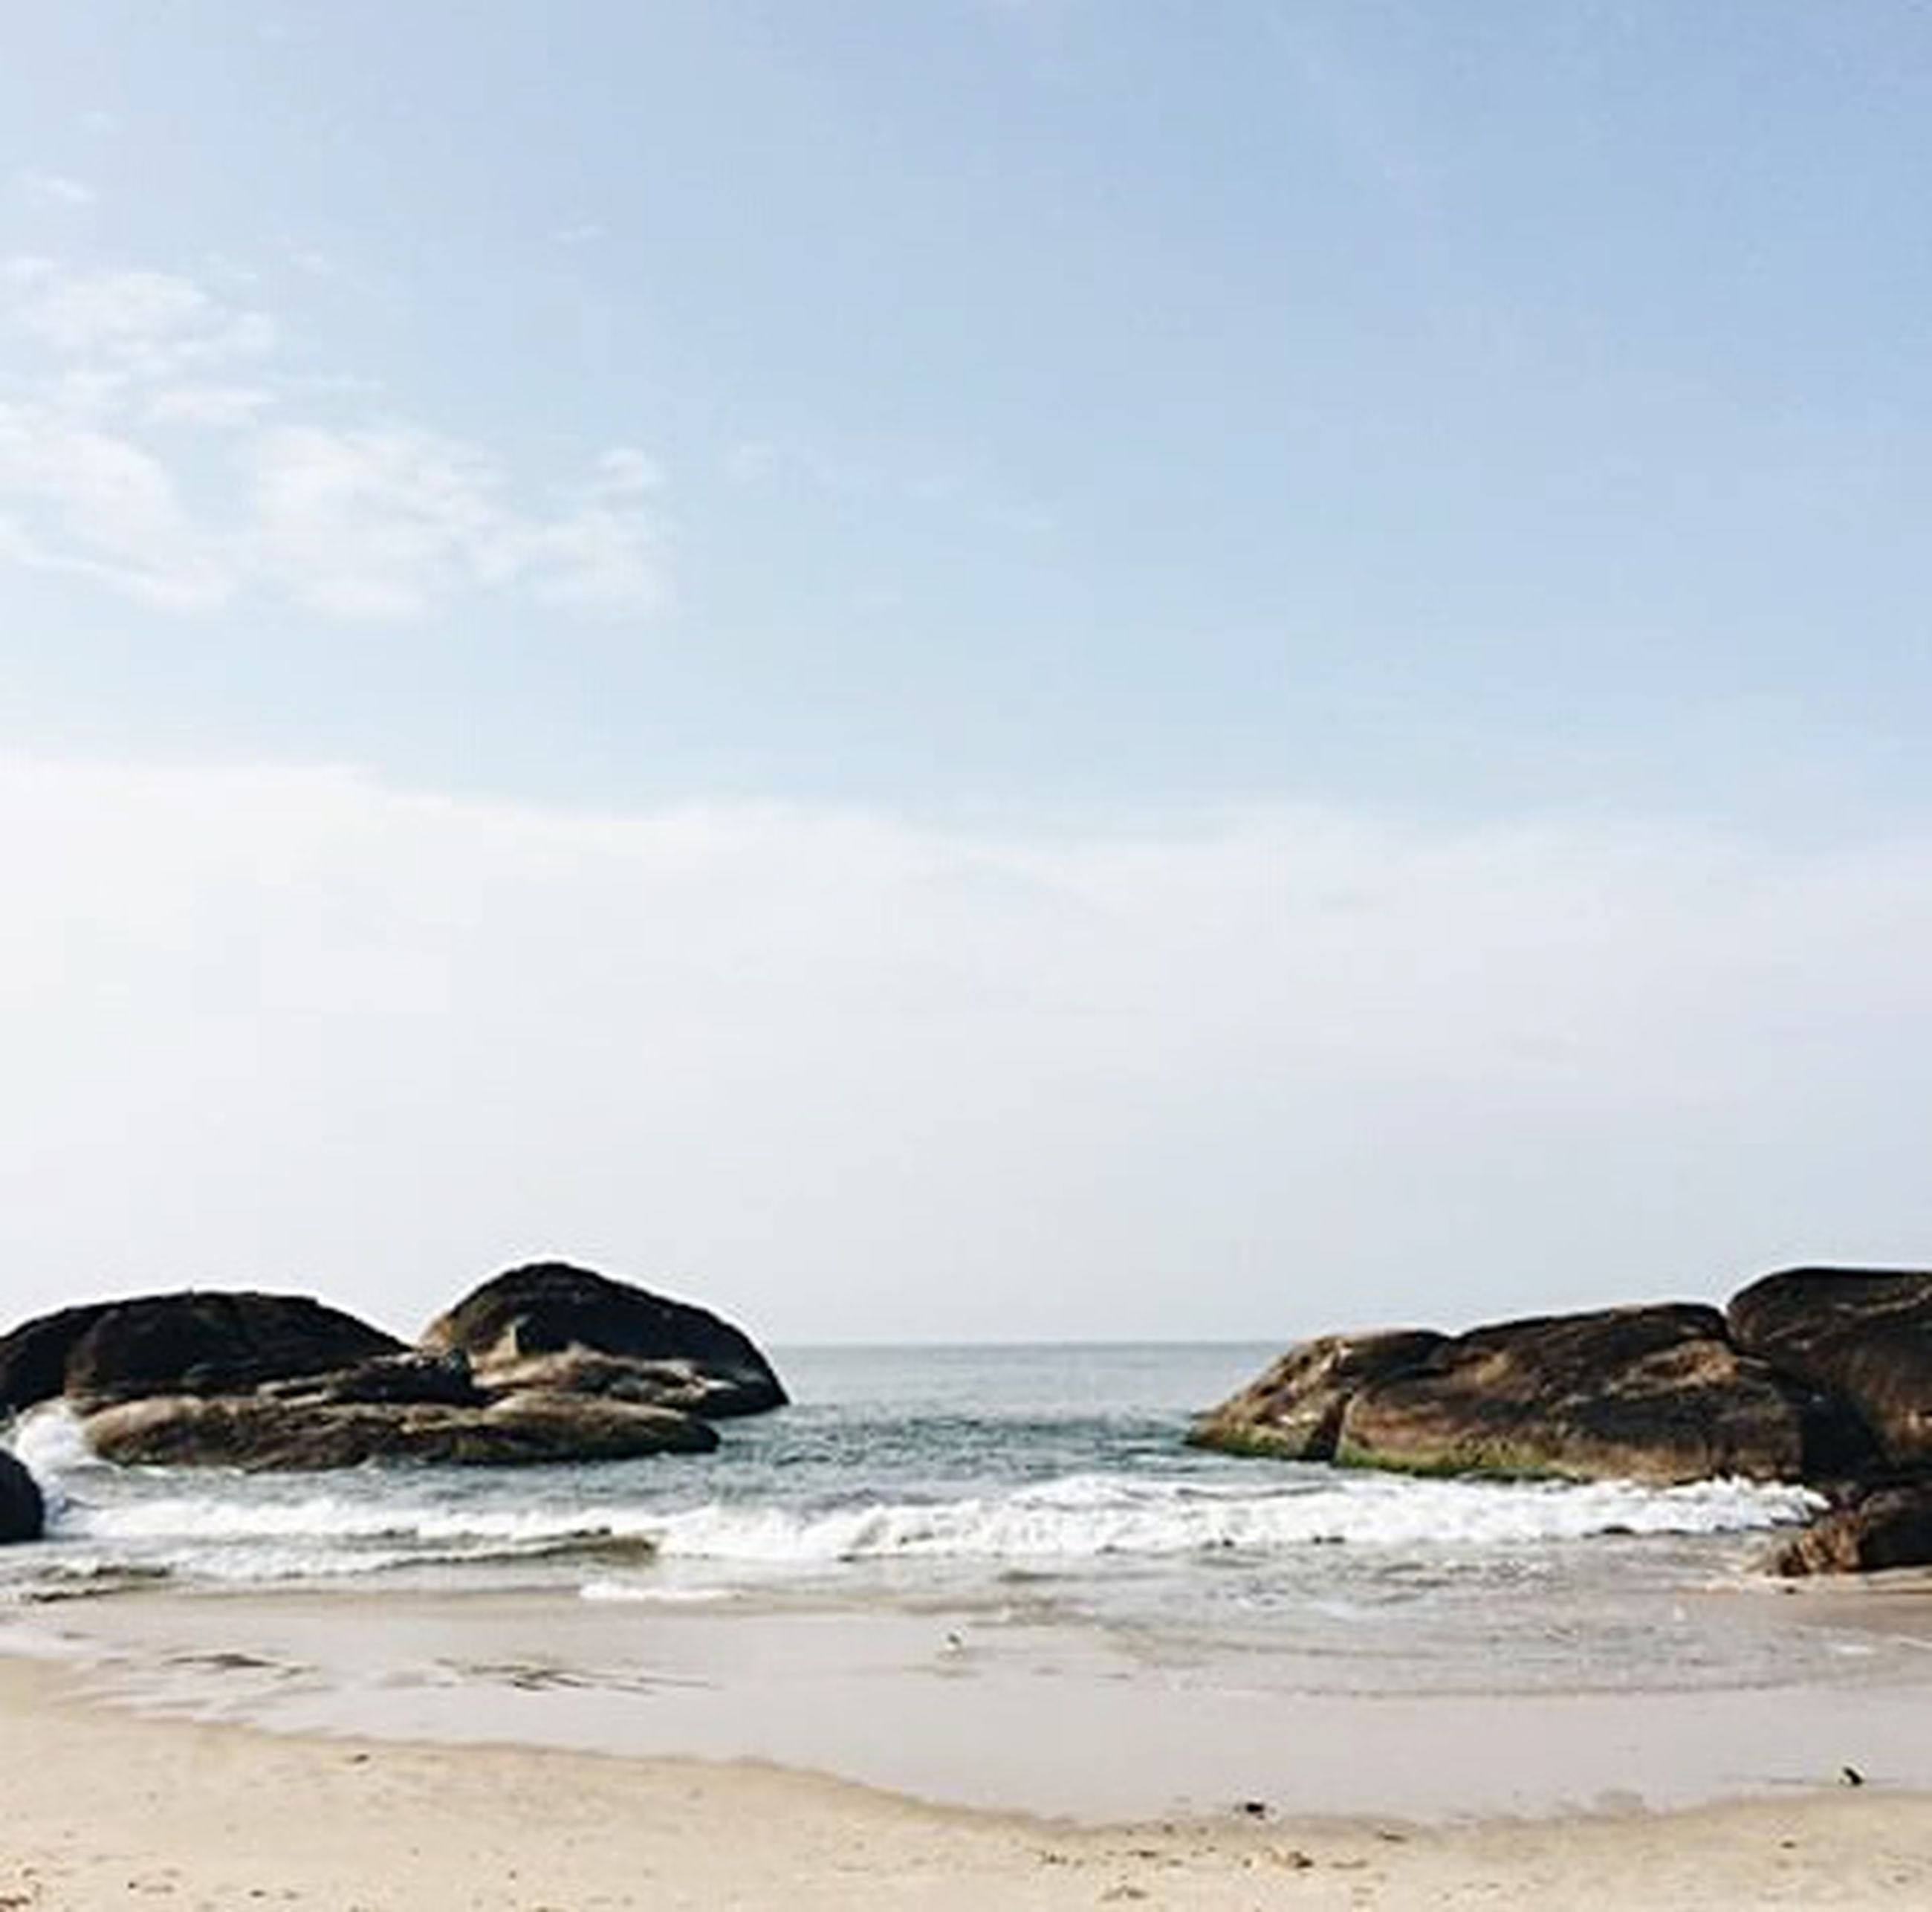 beach, sea, sand, shore, water, sky, horizon over water, tranquility, nature, tranquil scene, scenics, beauty in nature, animal themes, rock - object, one animal, relaxation, day, wave, wildlife, outdoors